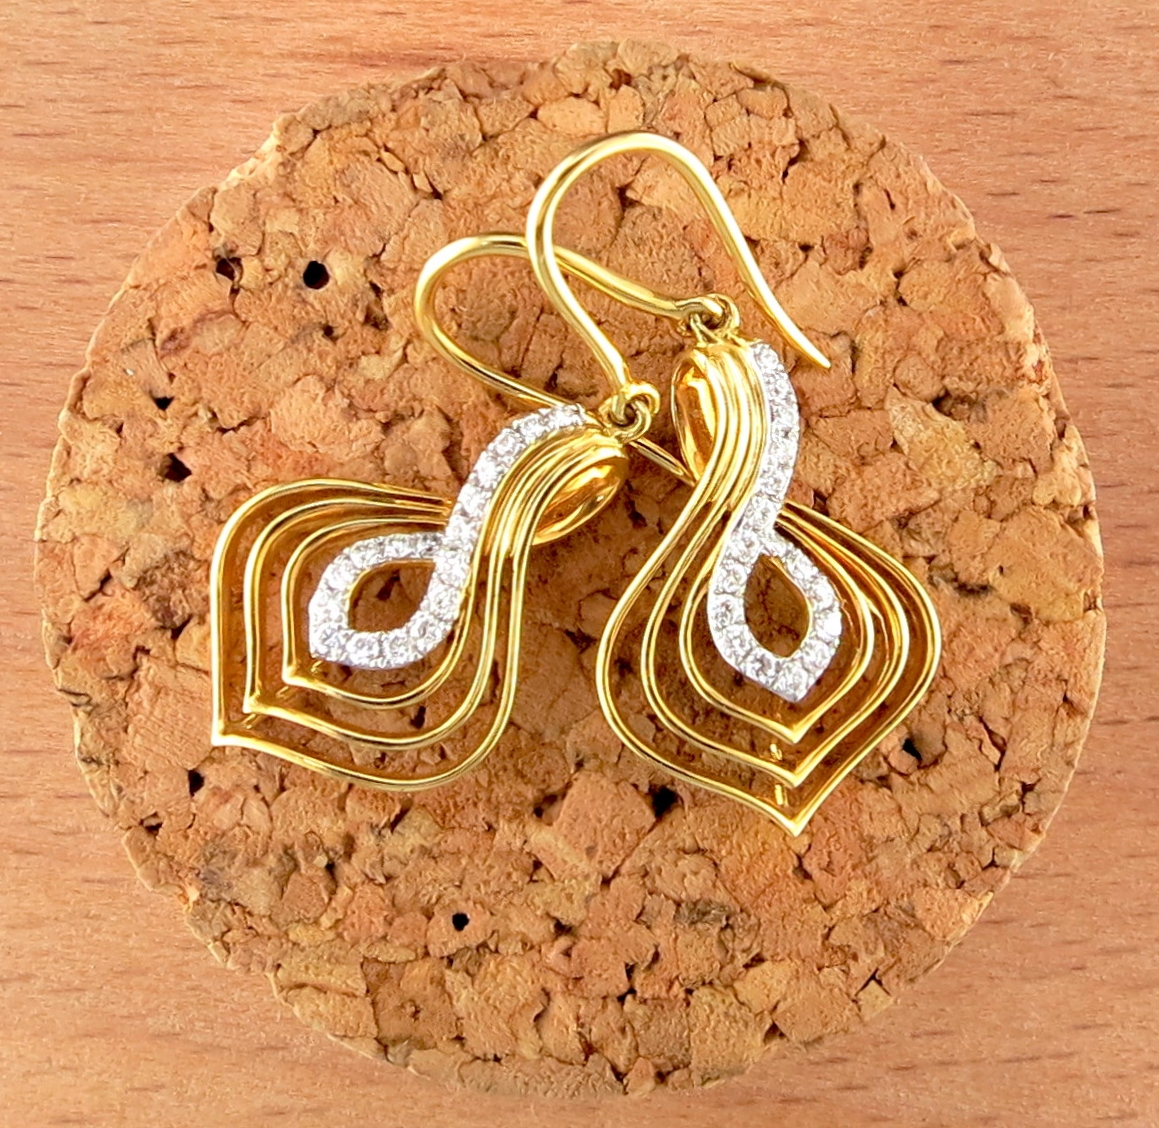 18 Karat Yellow Gold Dangle Earrings, accented with Diamonds (MB1139)